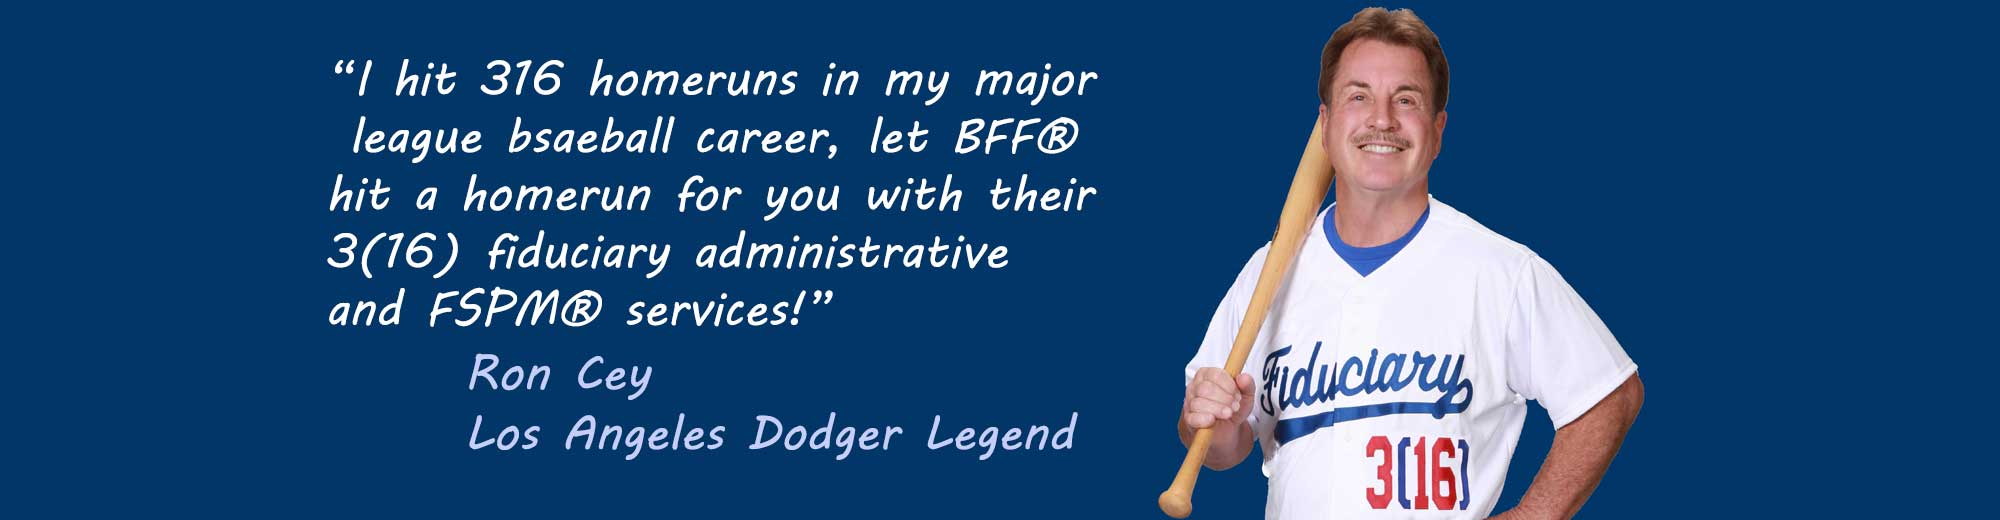 Ron Cey for BFF